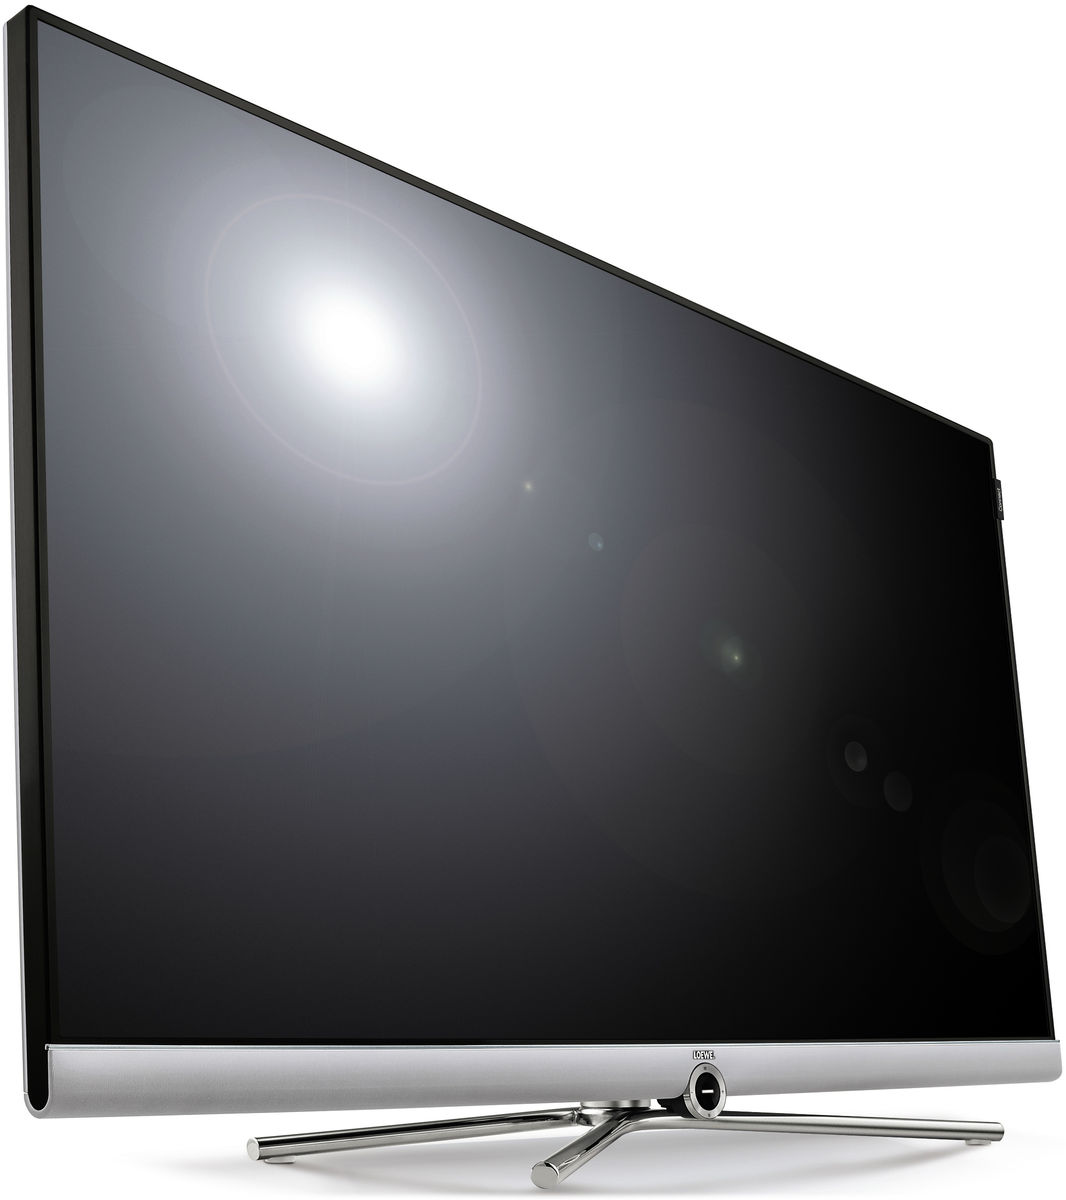 Loewe Connect 48 Dr Silver T L Viseurs Uhd 4k Sur Son Vid O Com # Meuble Tv Barre De Son Integree